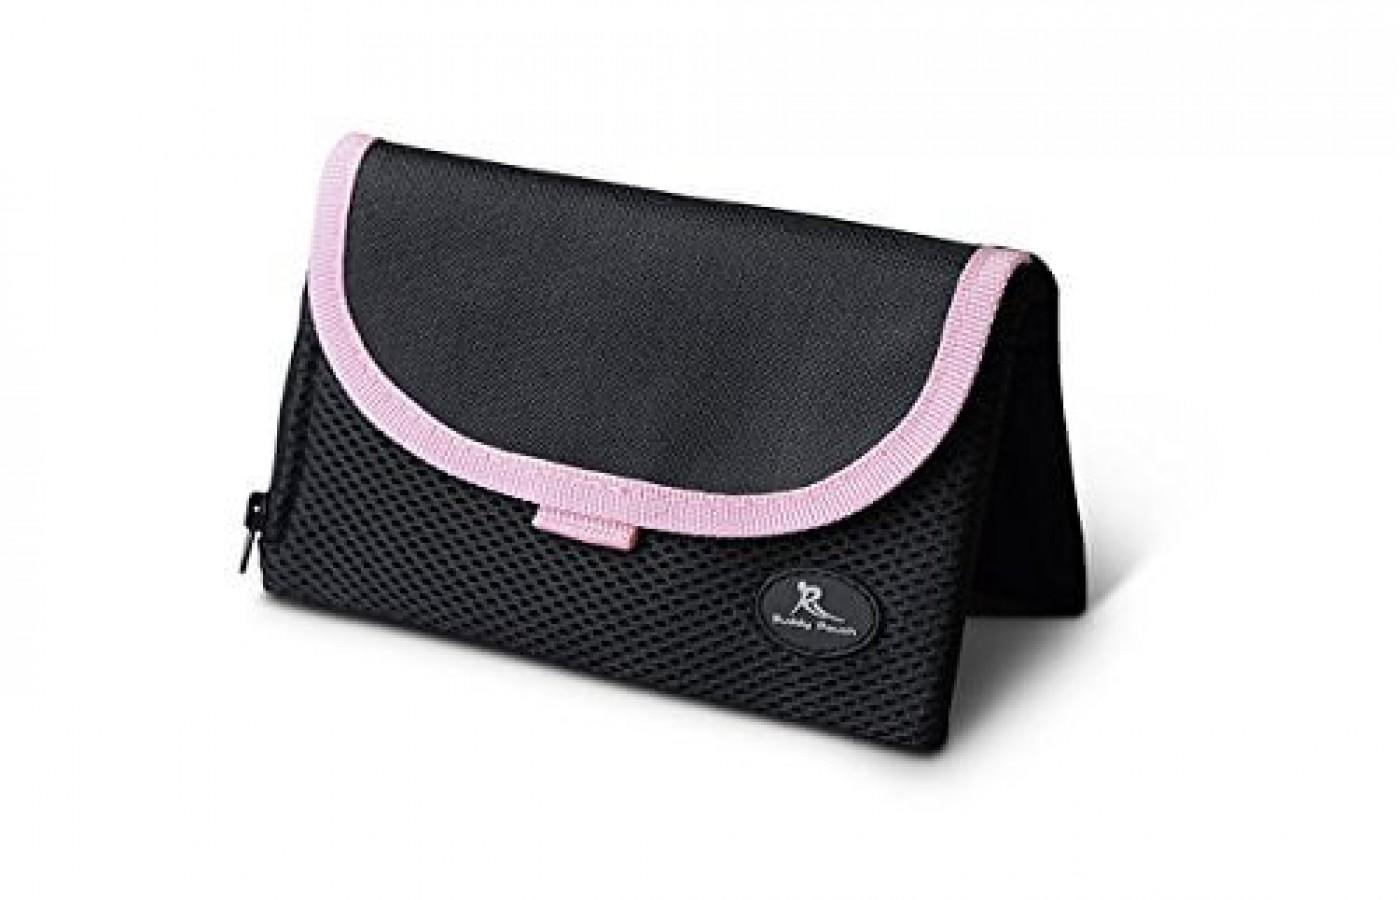 it comes in all black or black with pink trim